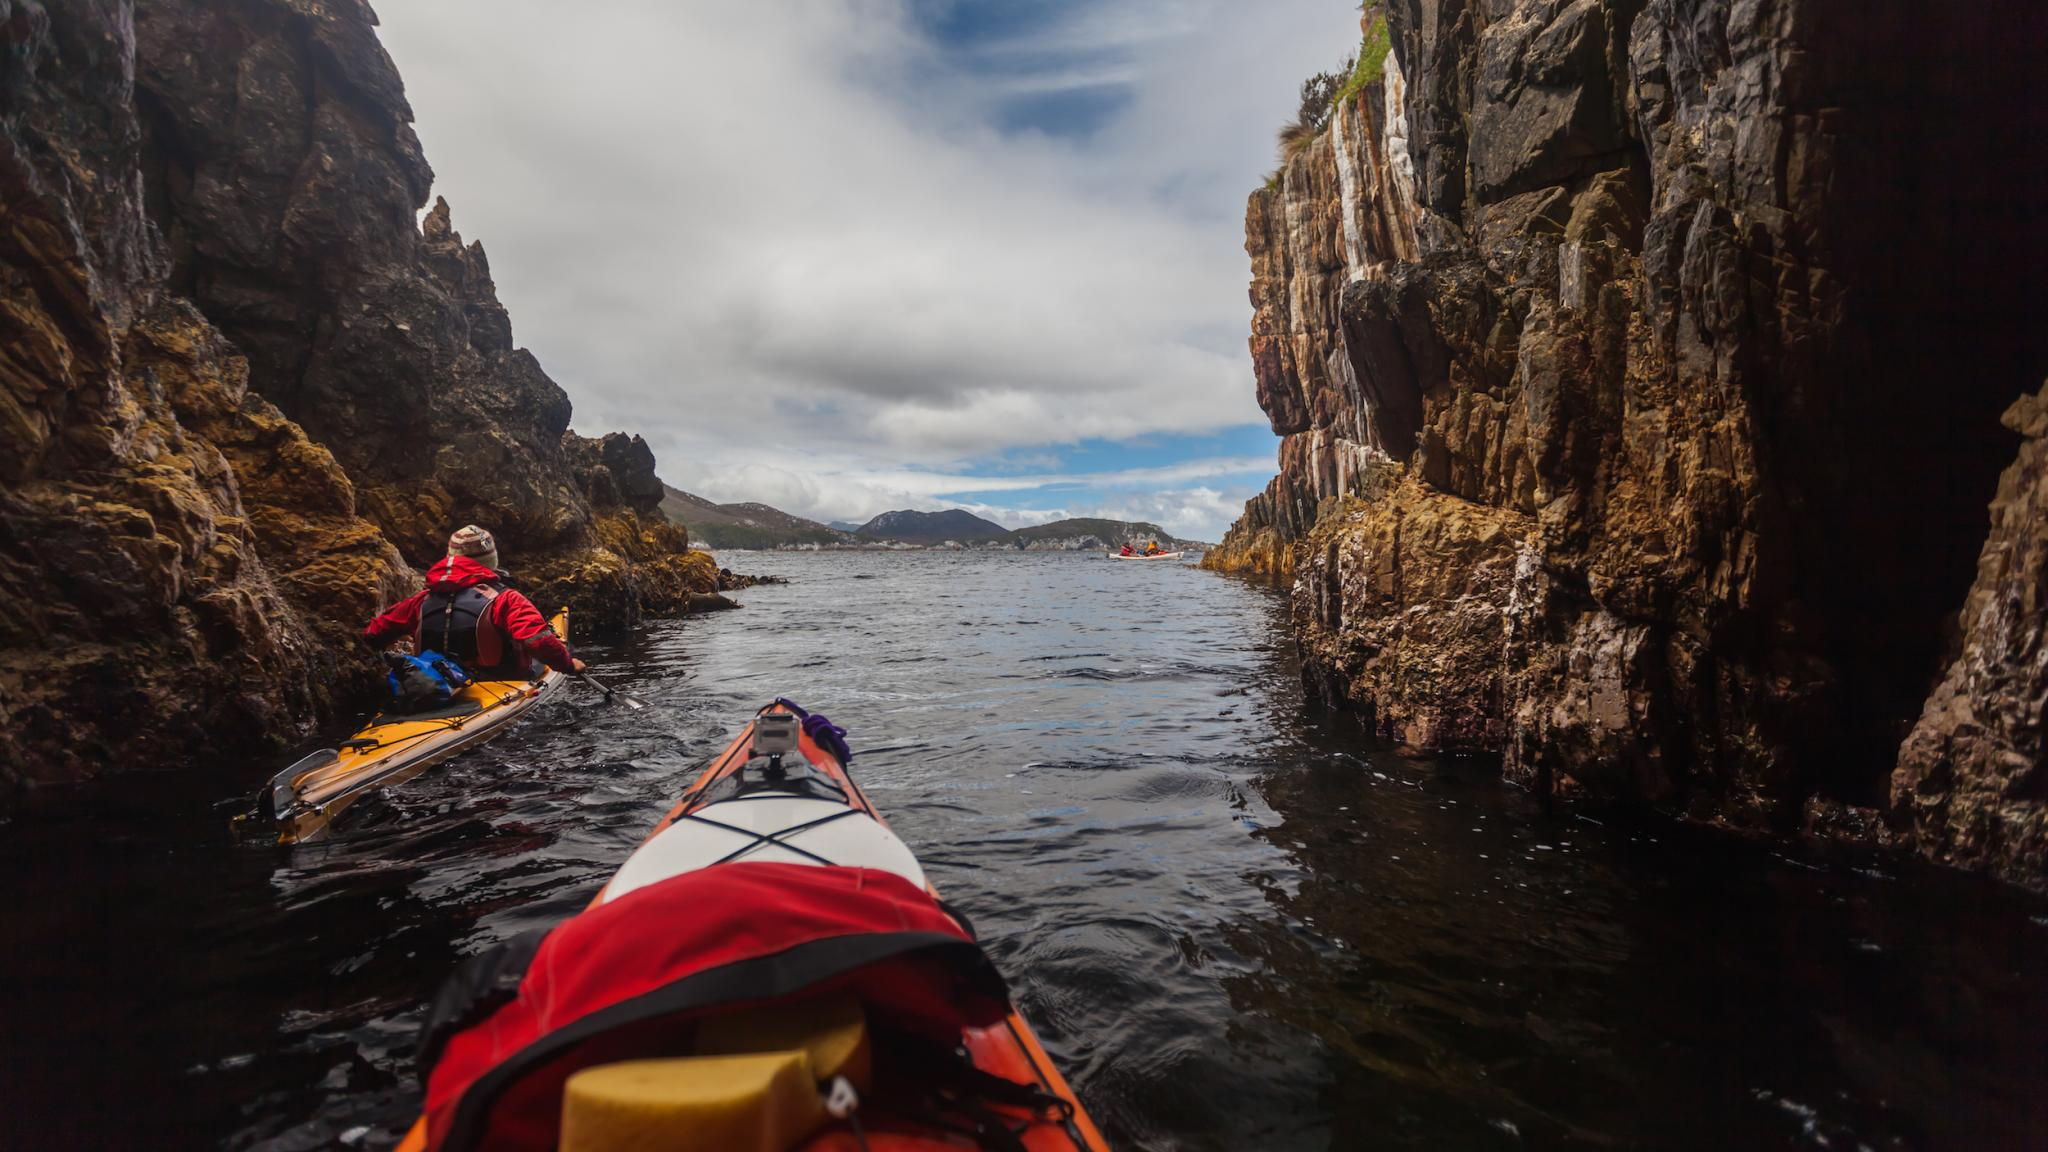 Roaring 40s Kayaking - Learn to kayak around cliffs Hobart Tasmania